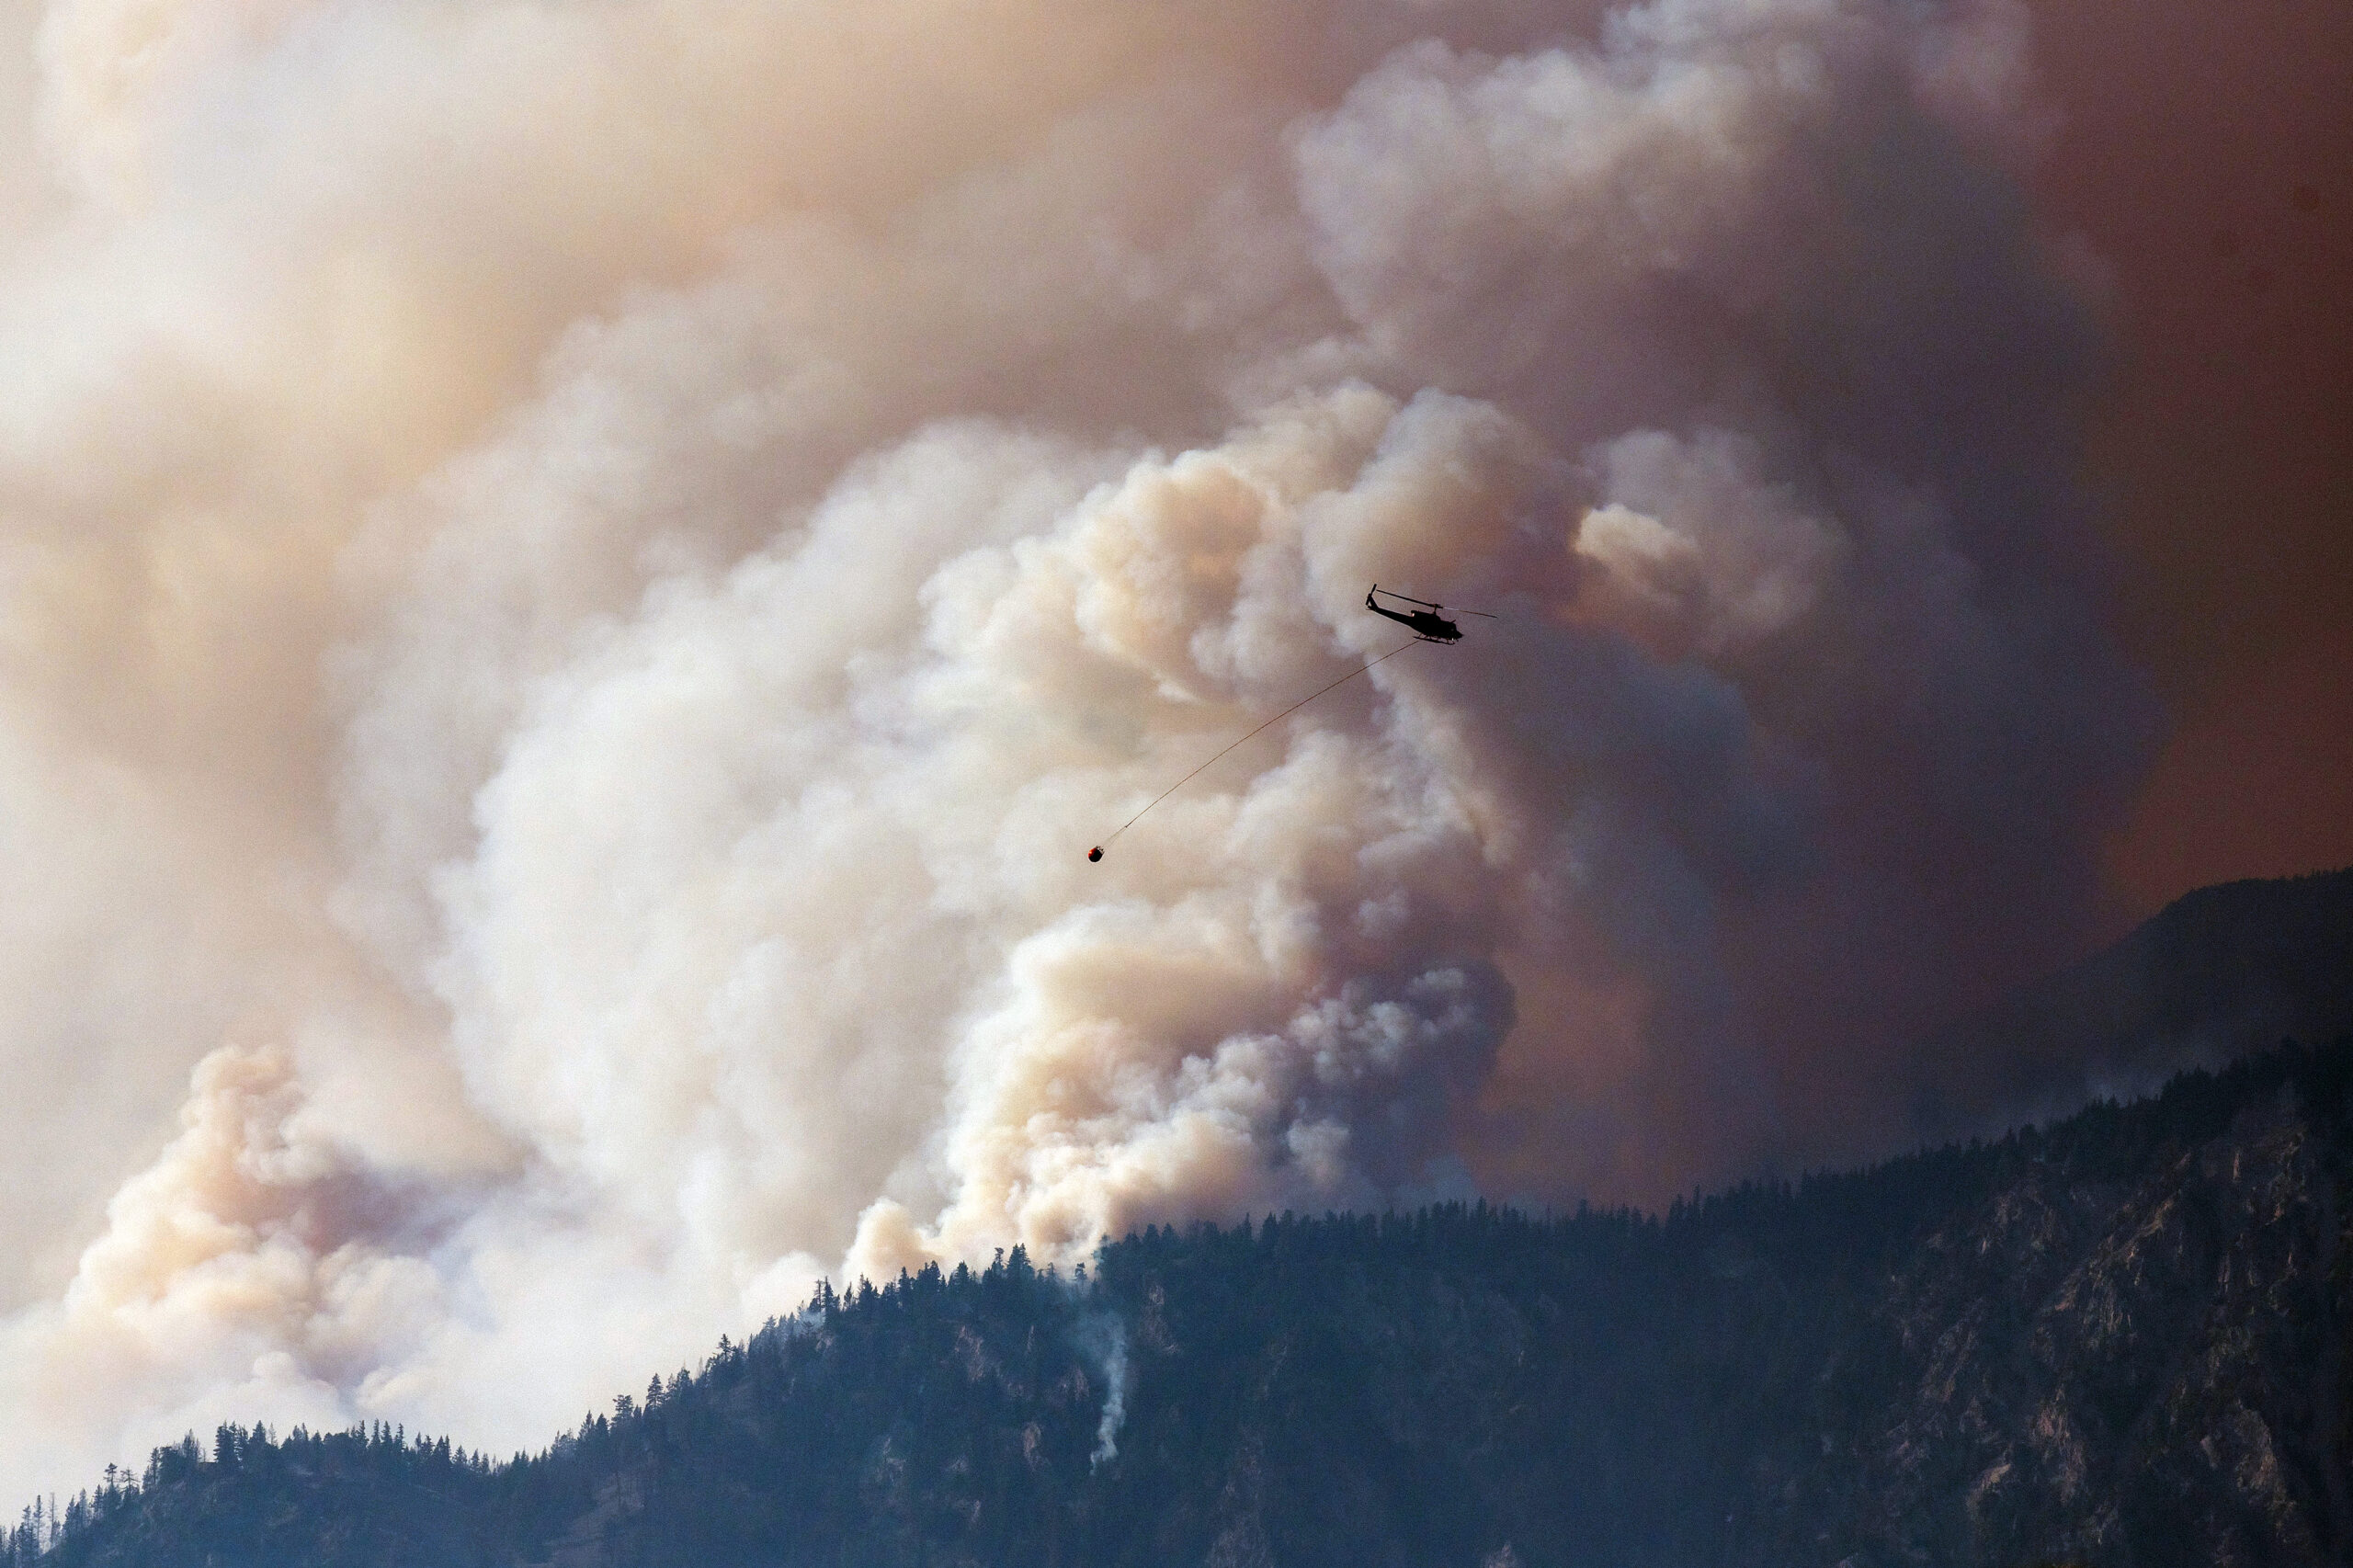 A helicopter prepares to make a water drop as smoke billows along the Fraser River Valley near Lytton, British Columbia, on July 2, as a protracted heat wave fueled scores of wildfires in Canada's western provinces. Credit: James MacDonald/Bloomberg via Getty Images